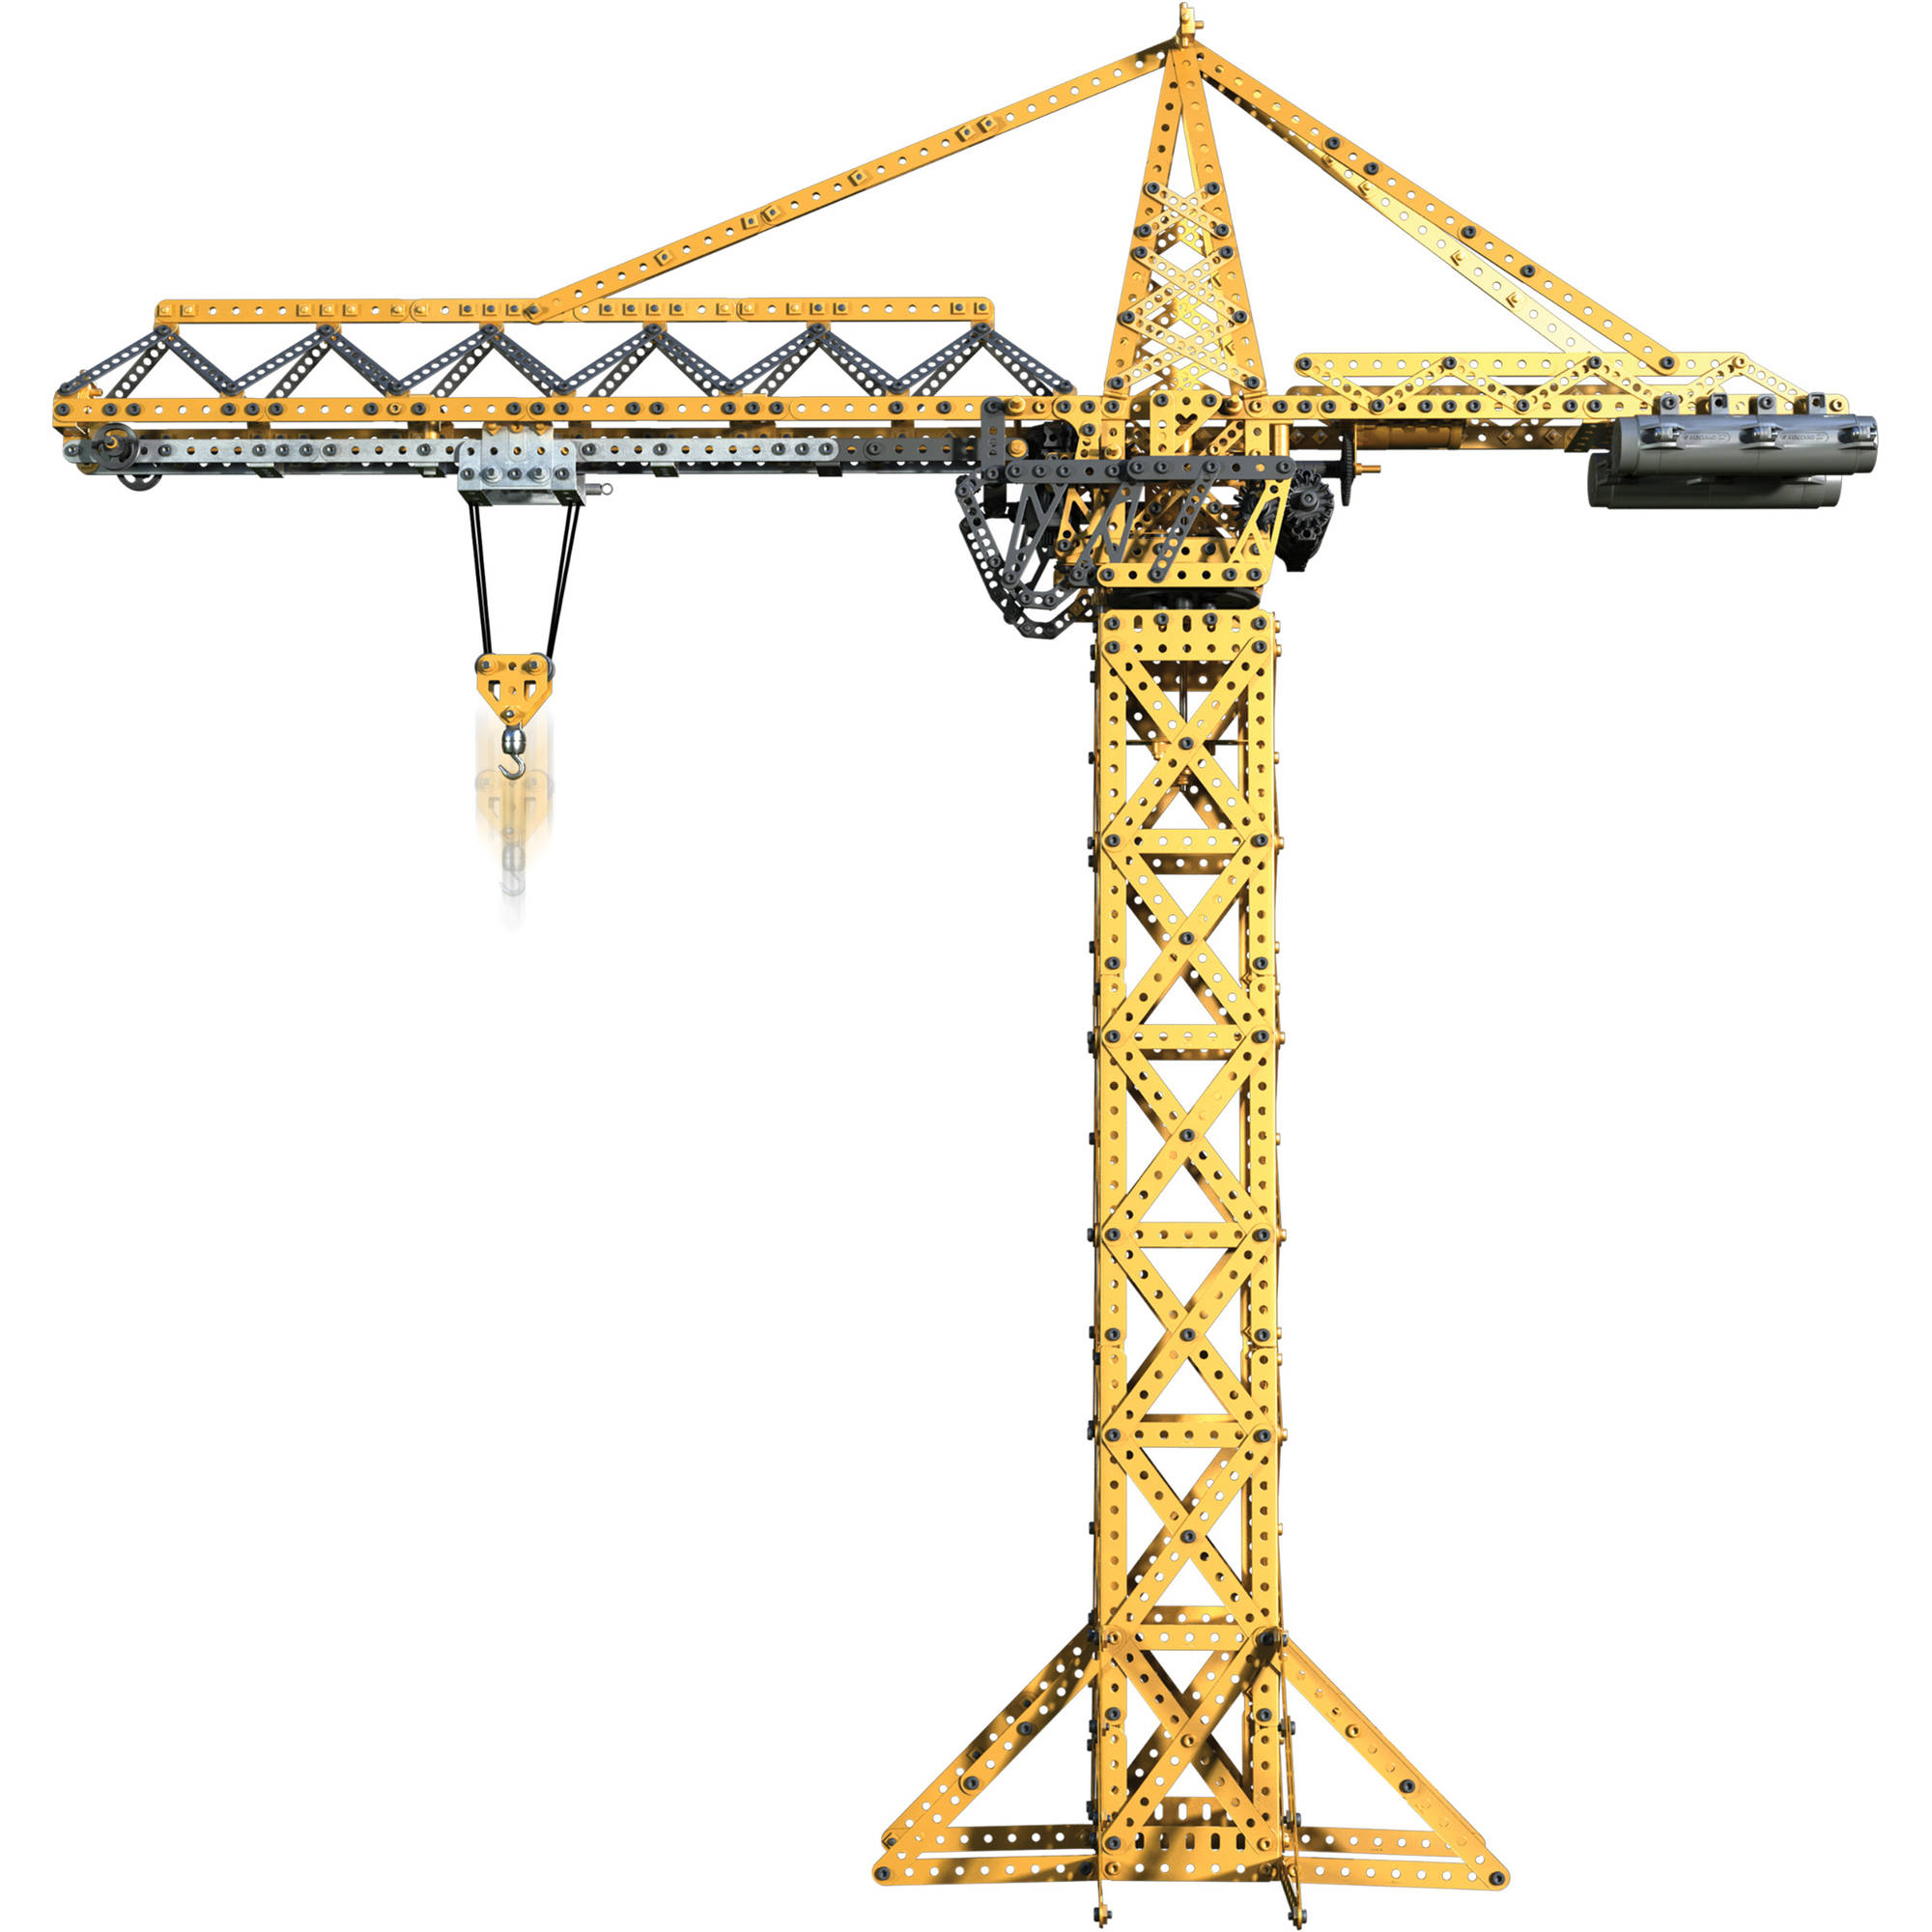 Meccano-Erector Tower Crane Model Set by SPIN MASTER